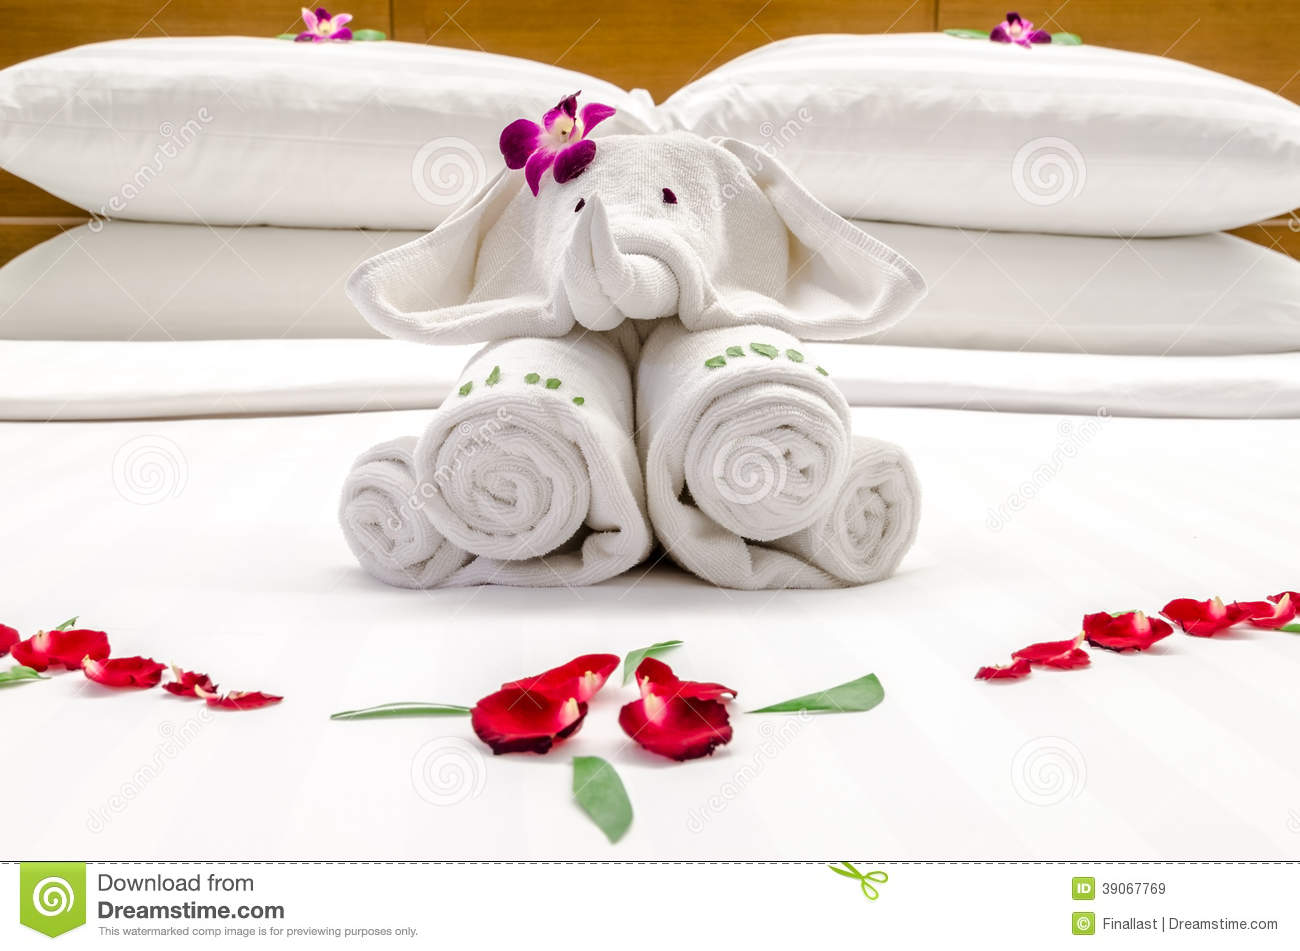 Bed decoration with flowers and elephant stock image for Bed decoration with flowers and balloons